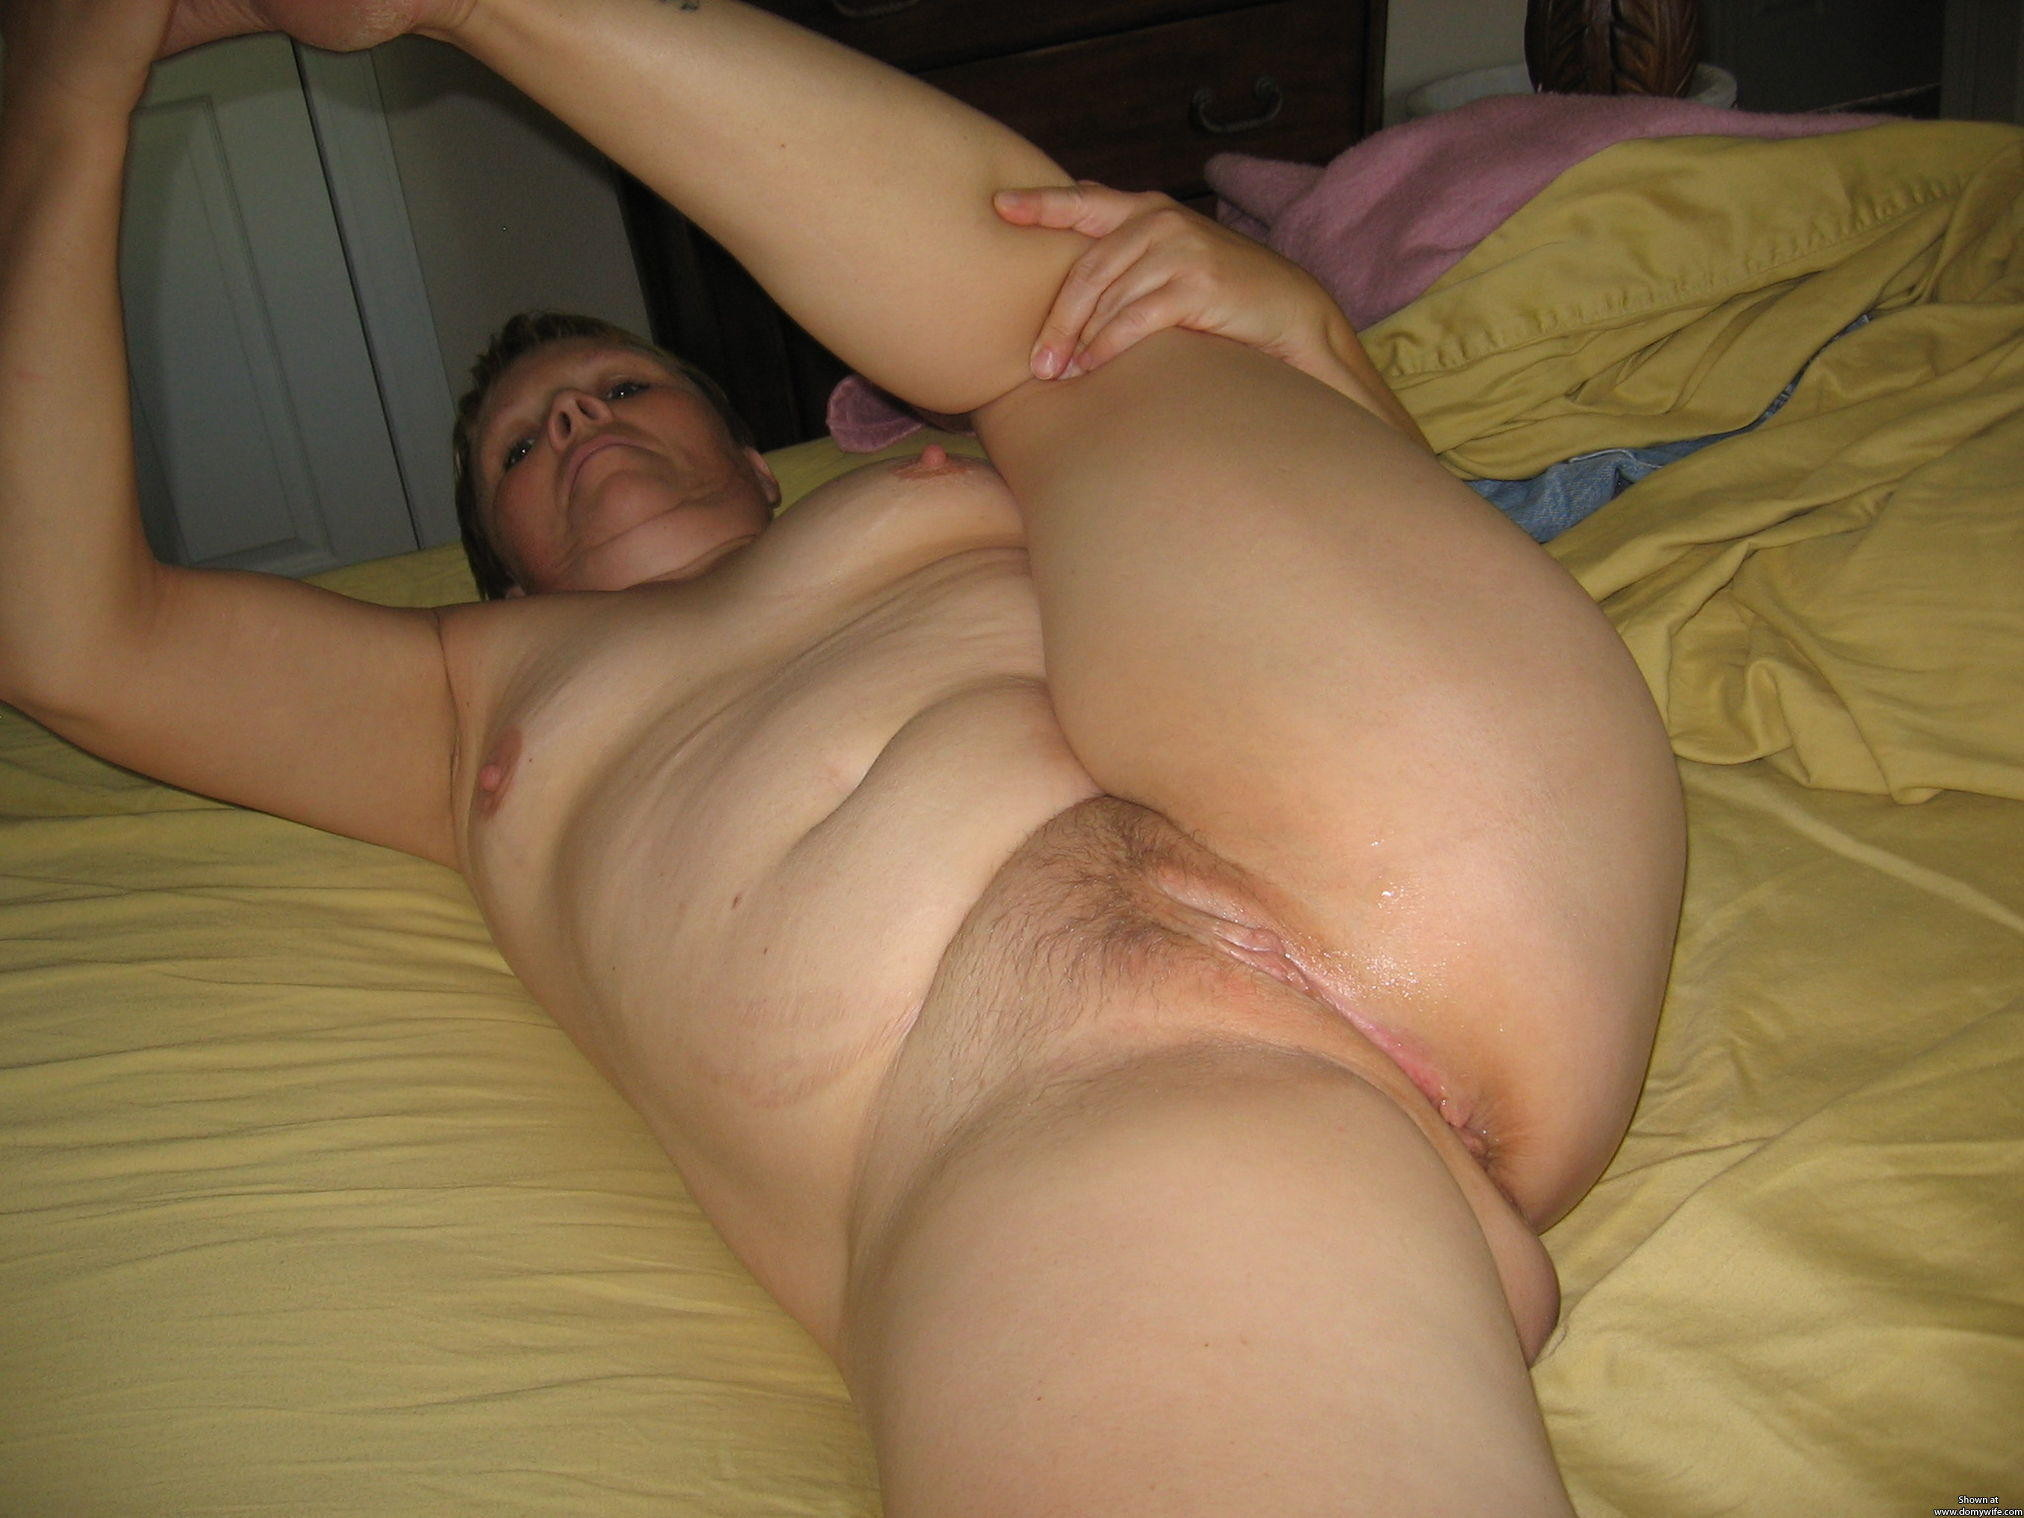 Older women big fat pussy the